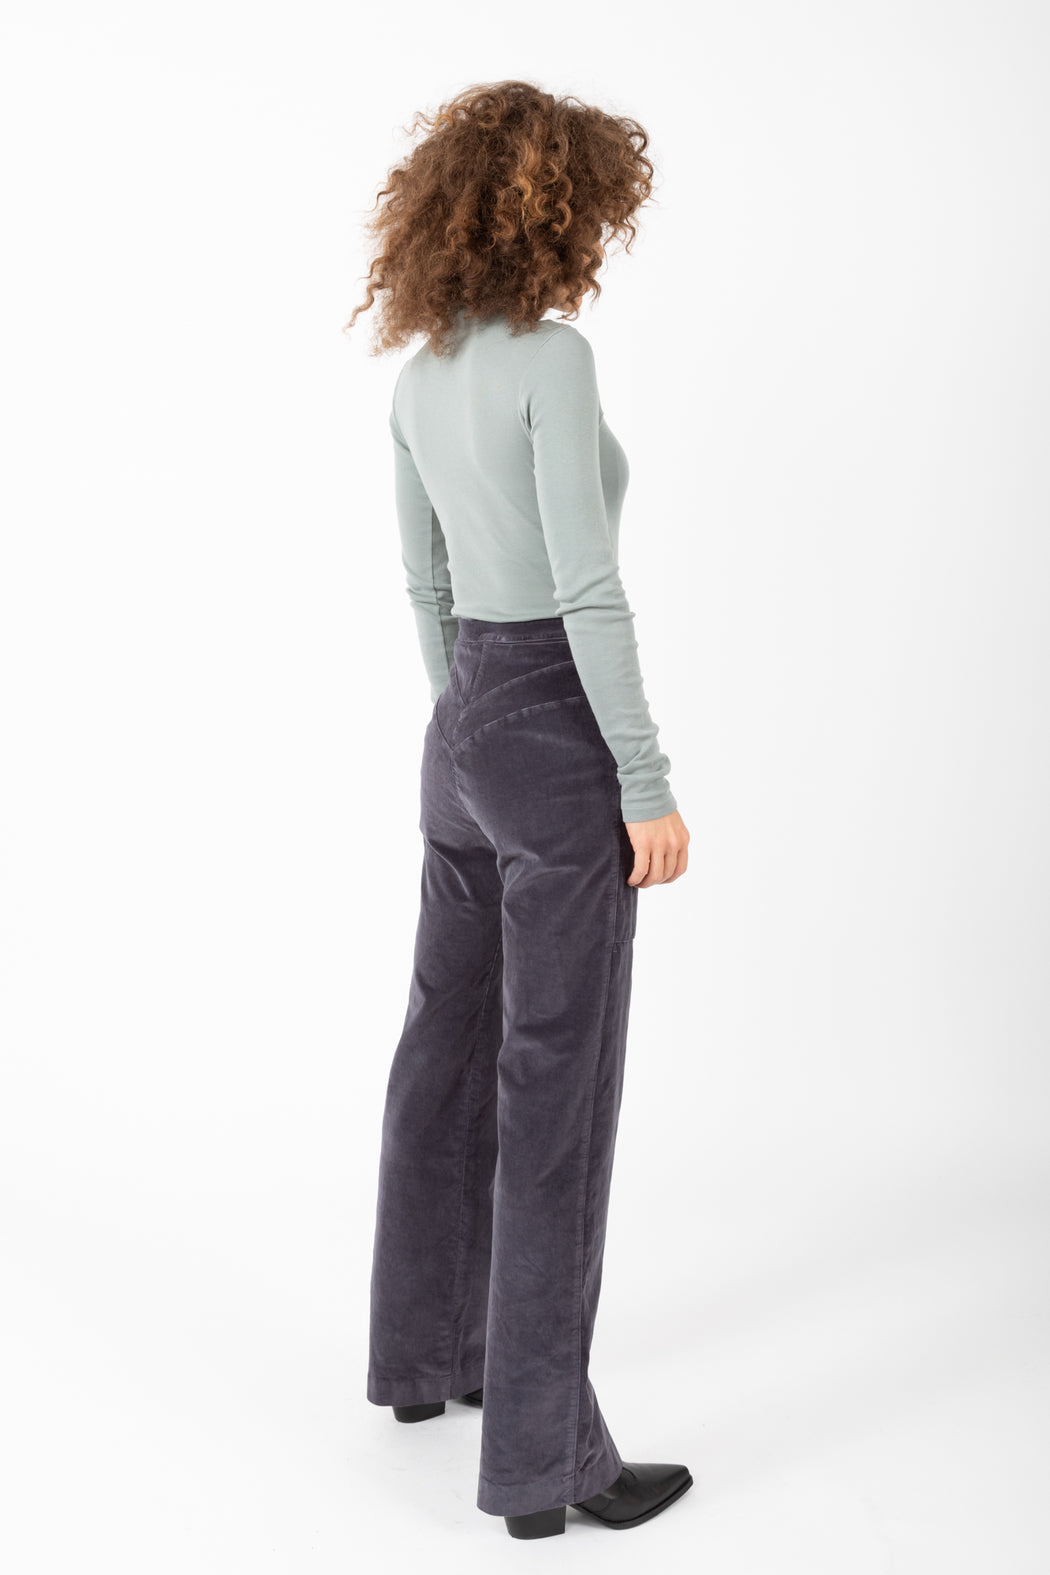 Our bestselling 70's inspired high-rise flares have been interpreted in a high stretch corduroy that resembles velvet. These Yr Cords have a double V back yoke with topstitching and deep patch pockets.